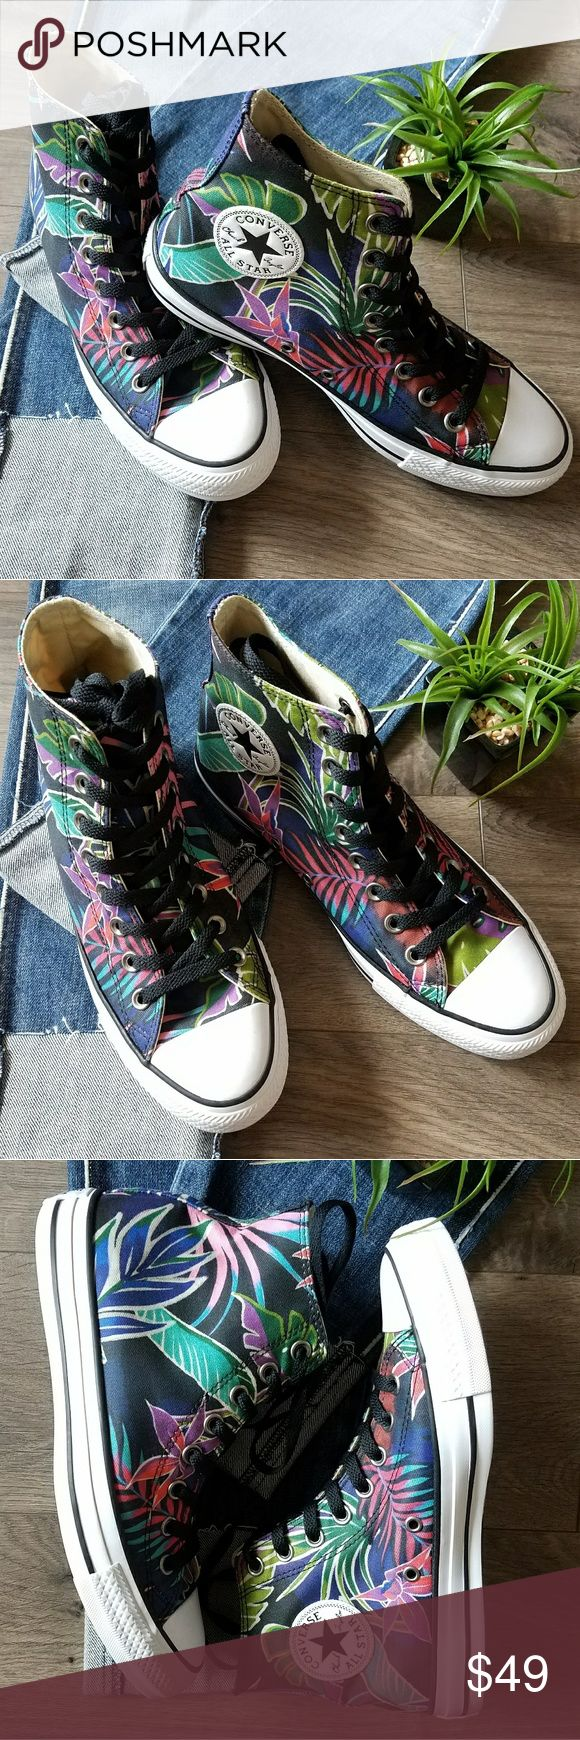 PRICE DROP⬇ Converse high tops New without box.  Converse high tops in a fun tropical print.  Canvas upper witj cushioned footbed for comfort.  Versatile and perfect with jeans, shorts, skirts, and dresses!  Smoke free and pet free home. Converse Shoes Sneakers